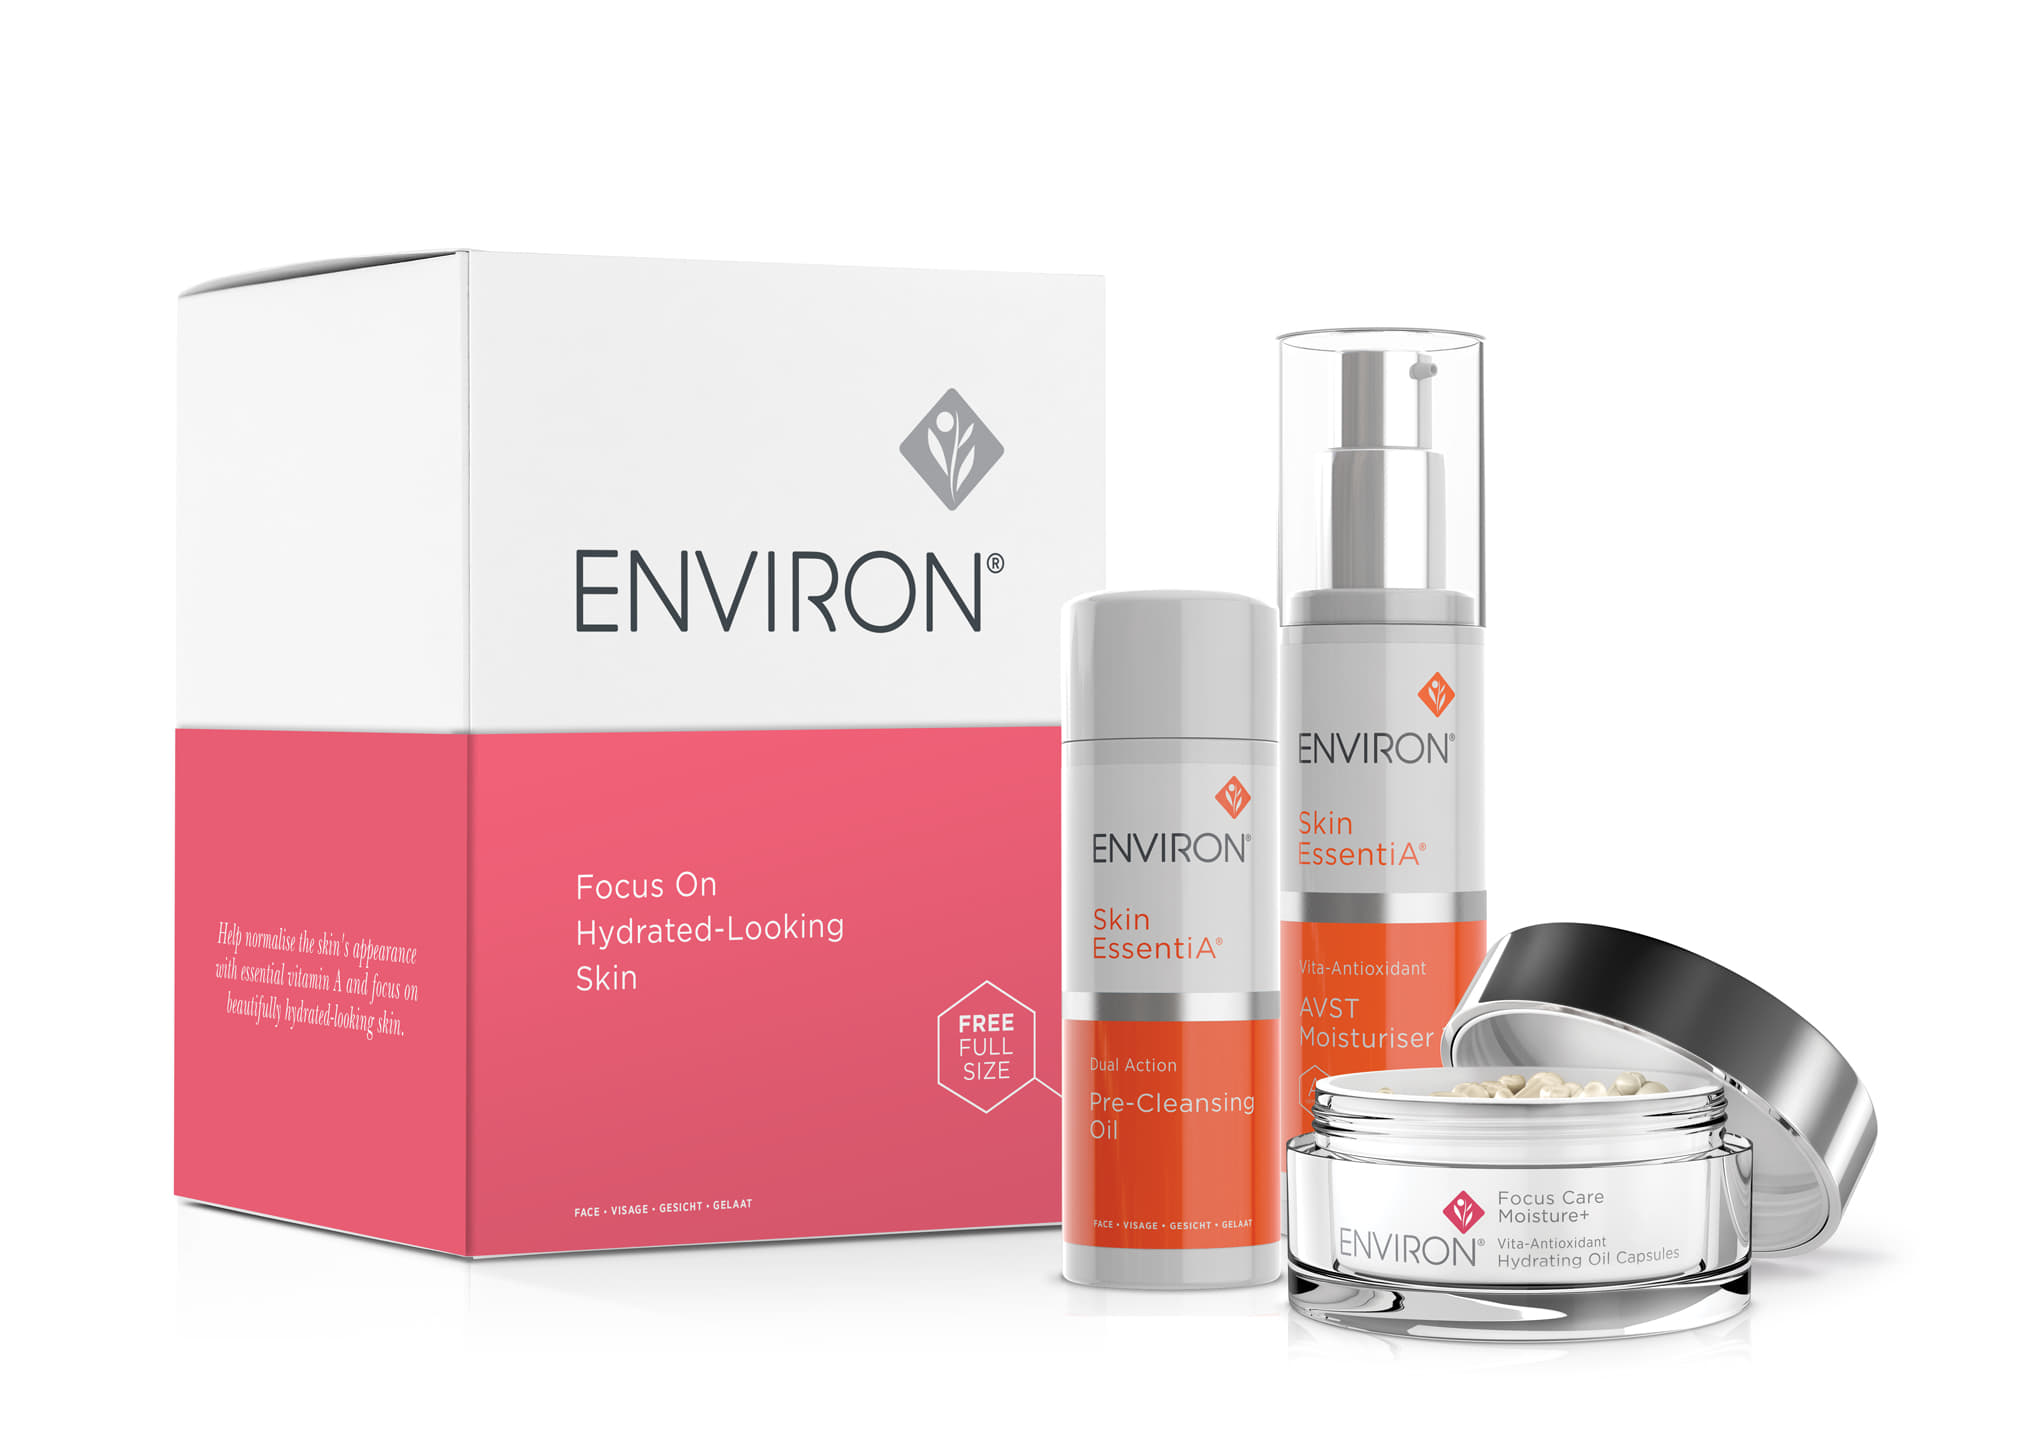 Environ Focus On – Hydrated Looking Skin